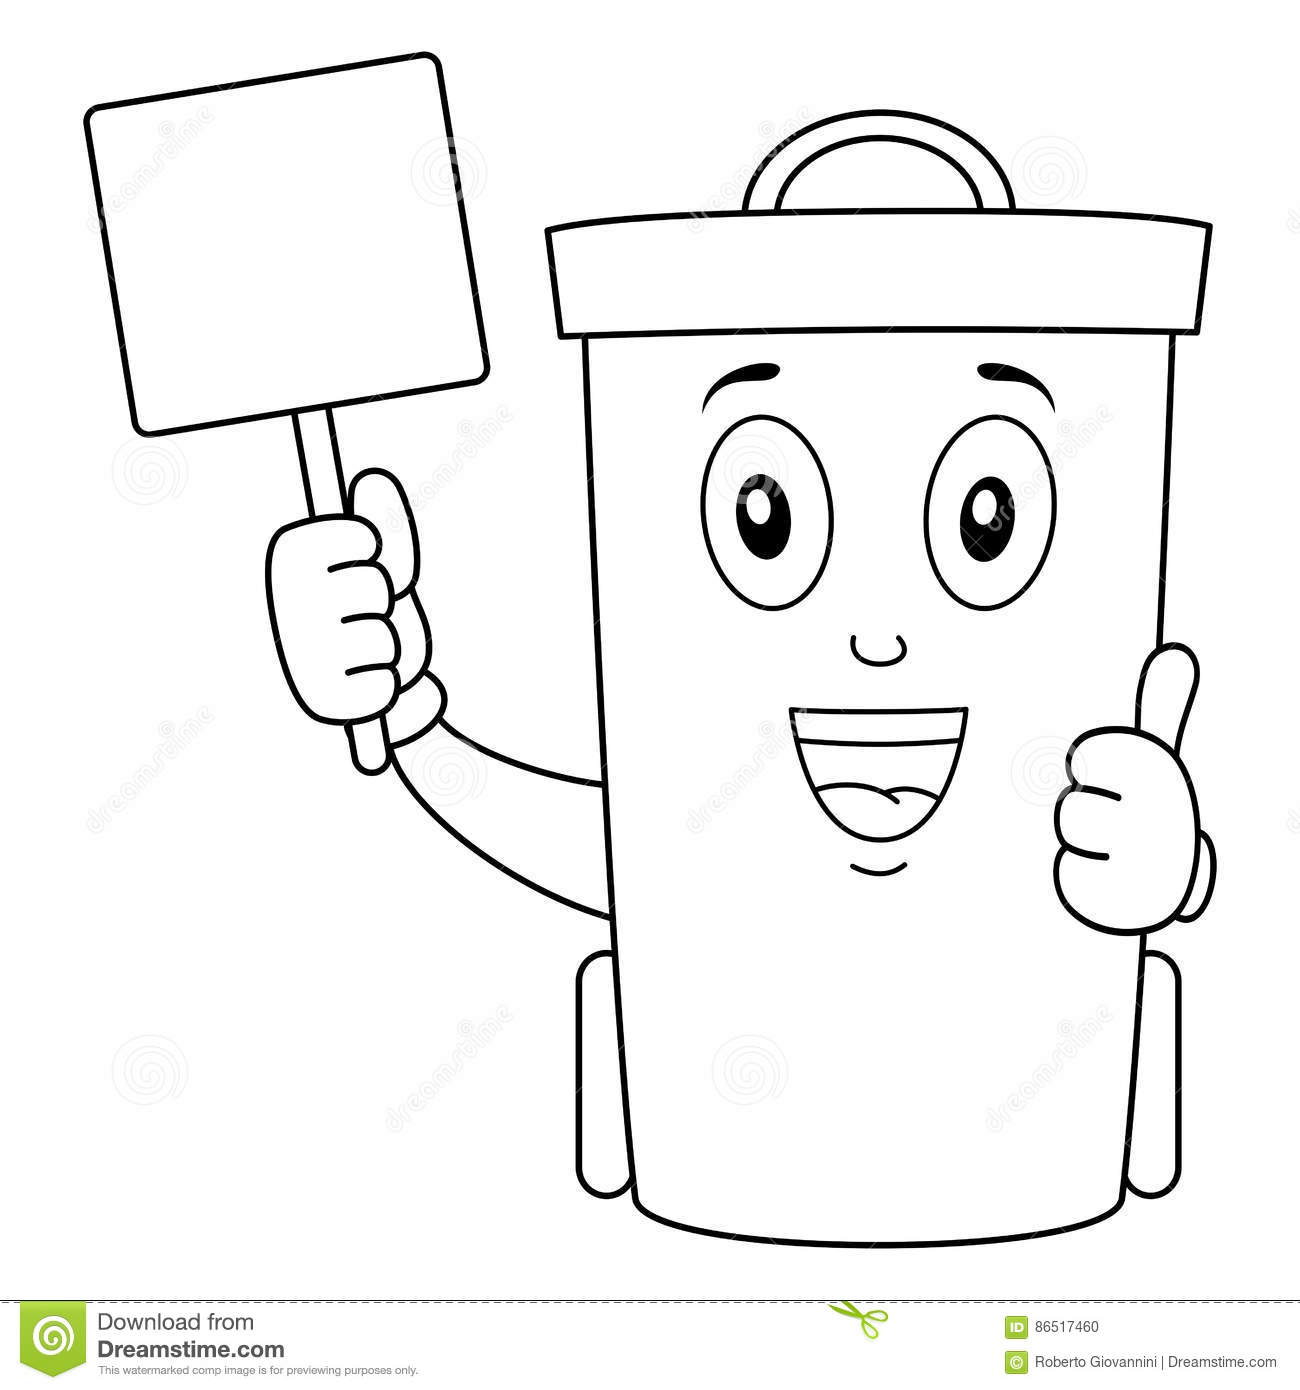 Coloring Cute Trash Can Or Waste Bin Stock Vector